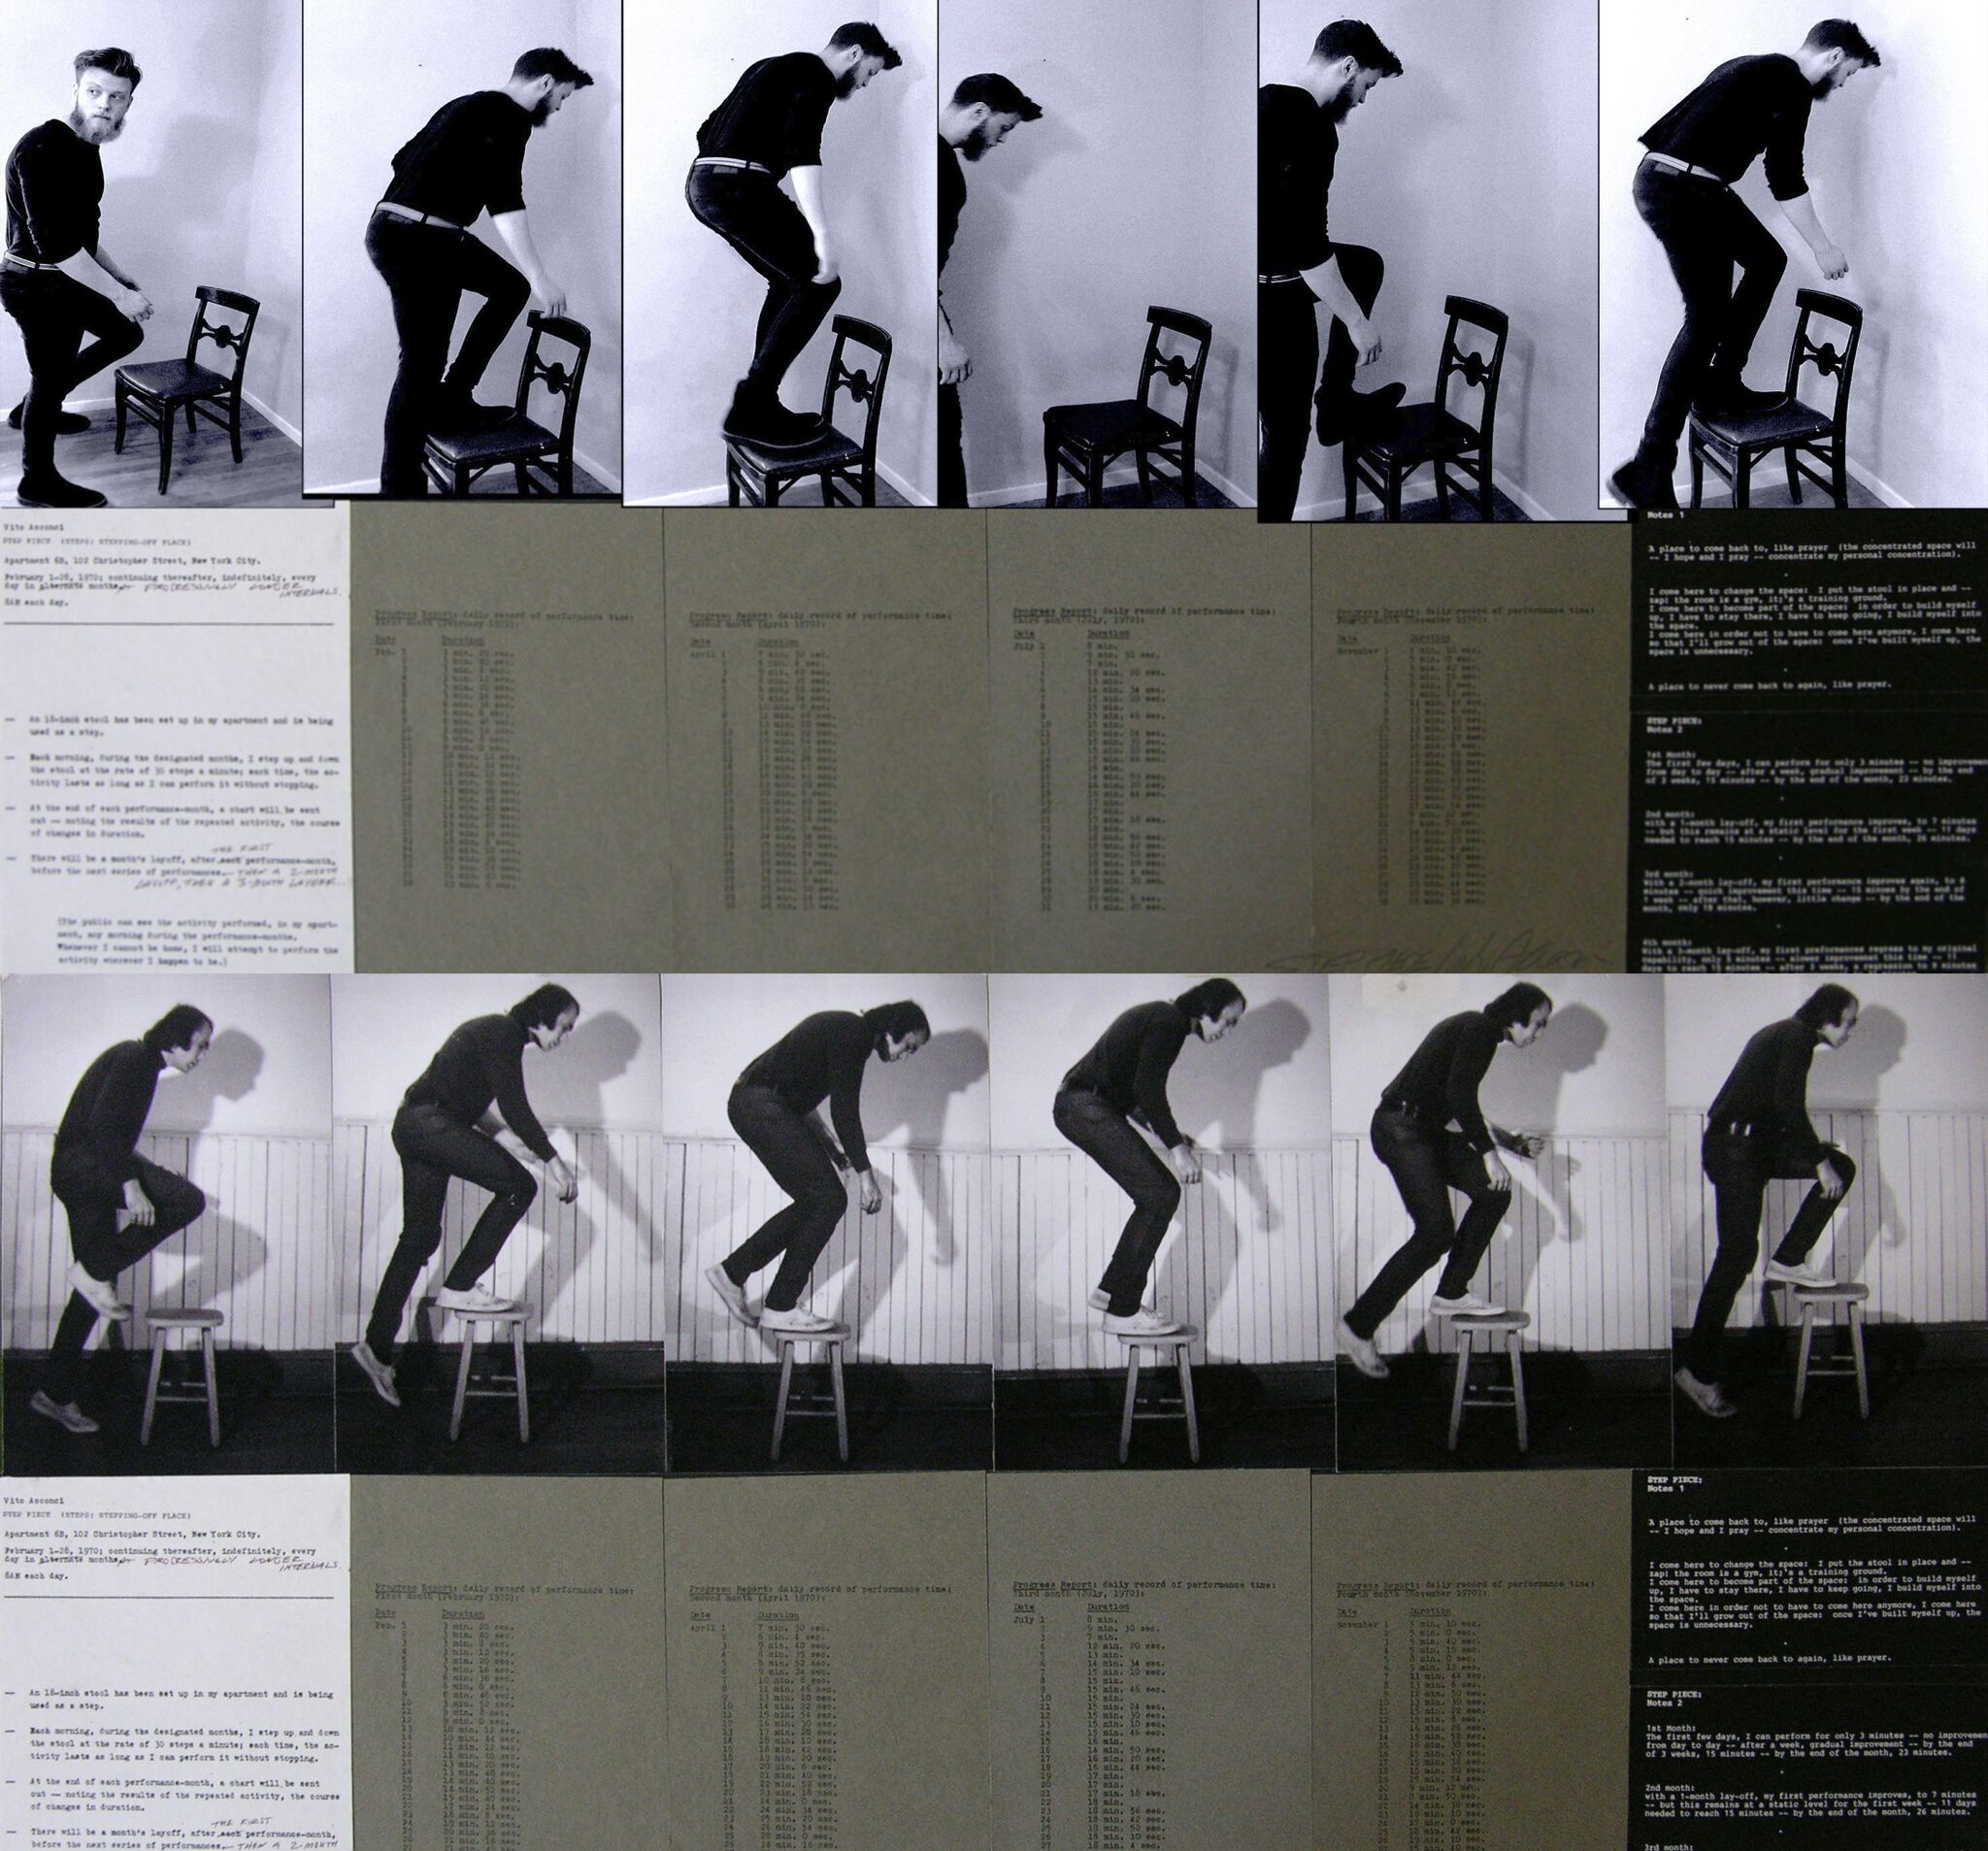 Process Pictures of someone standing on a chair